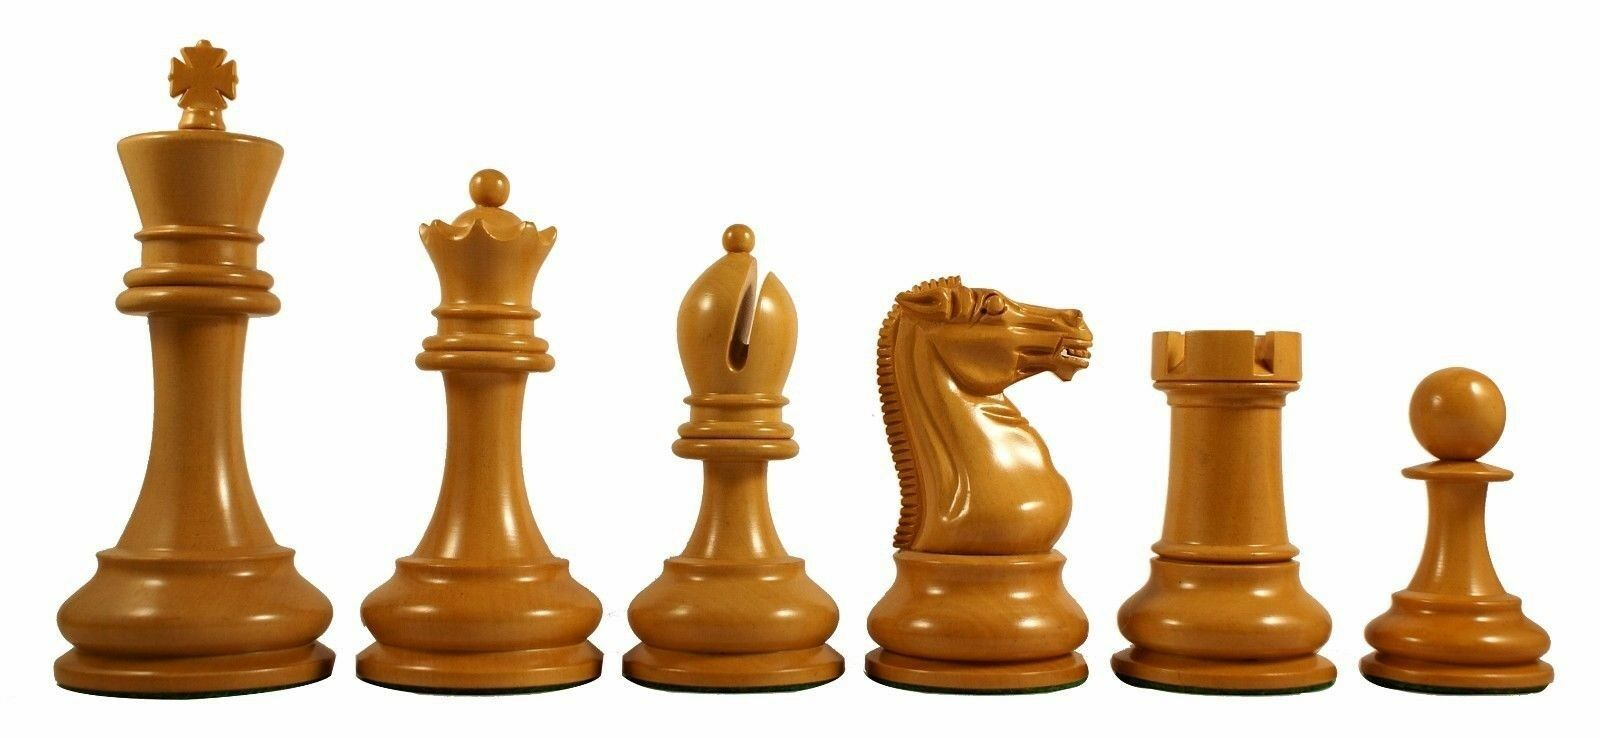 Jaques Reproduction BCC Circa1900-01 Staunton Stroud Club Series Series Series Chessmen 008a8c